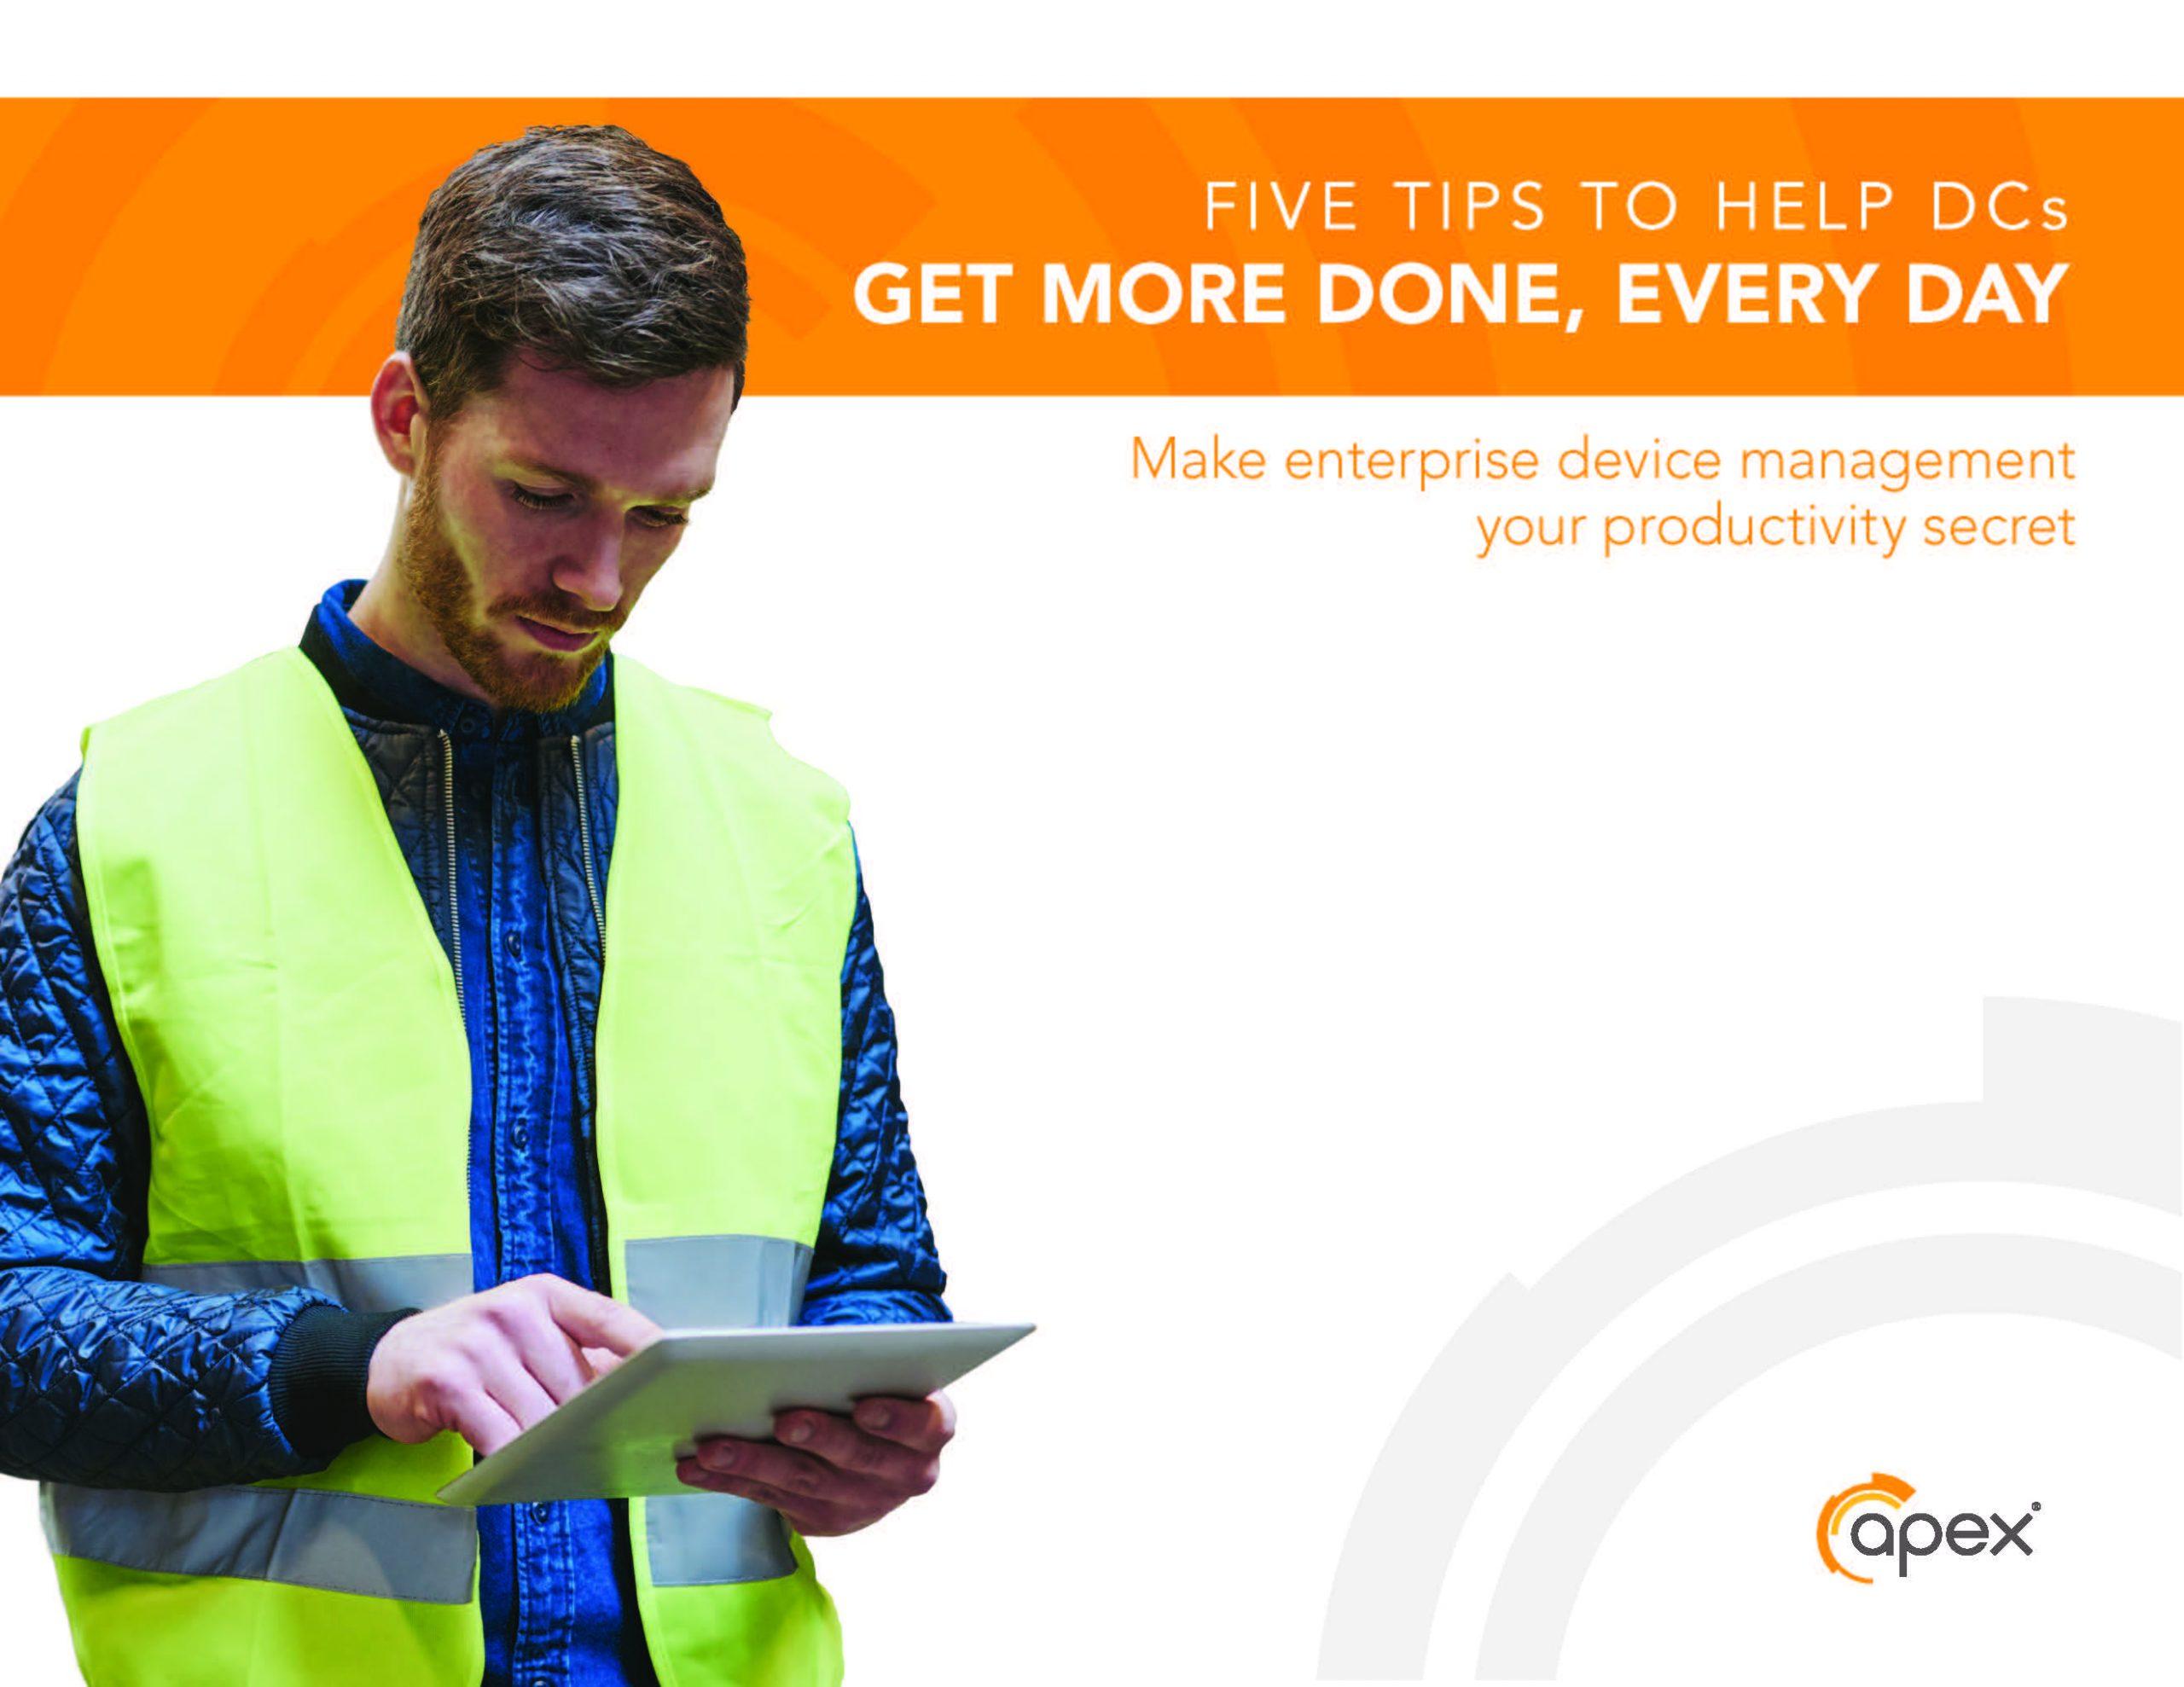 Distribution center white paper: Five Tips to Help DCs Get More Done Every Day